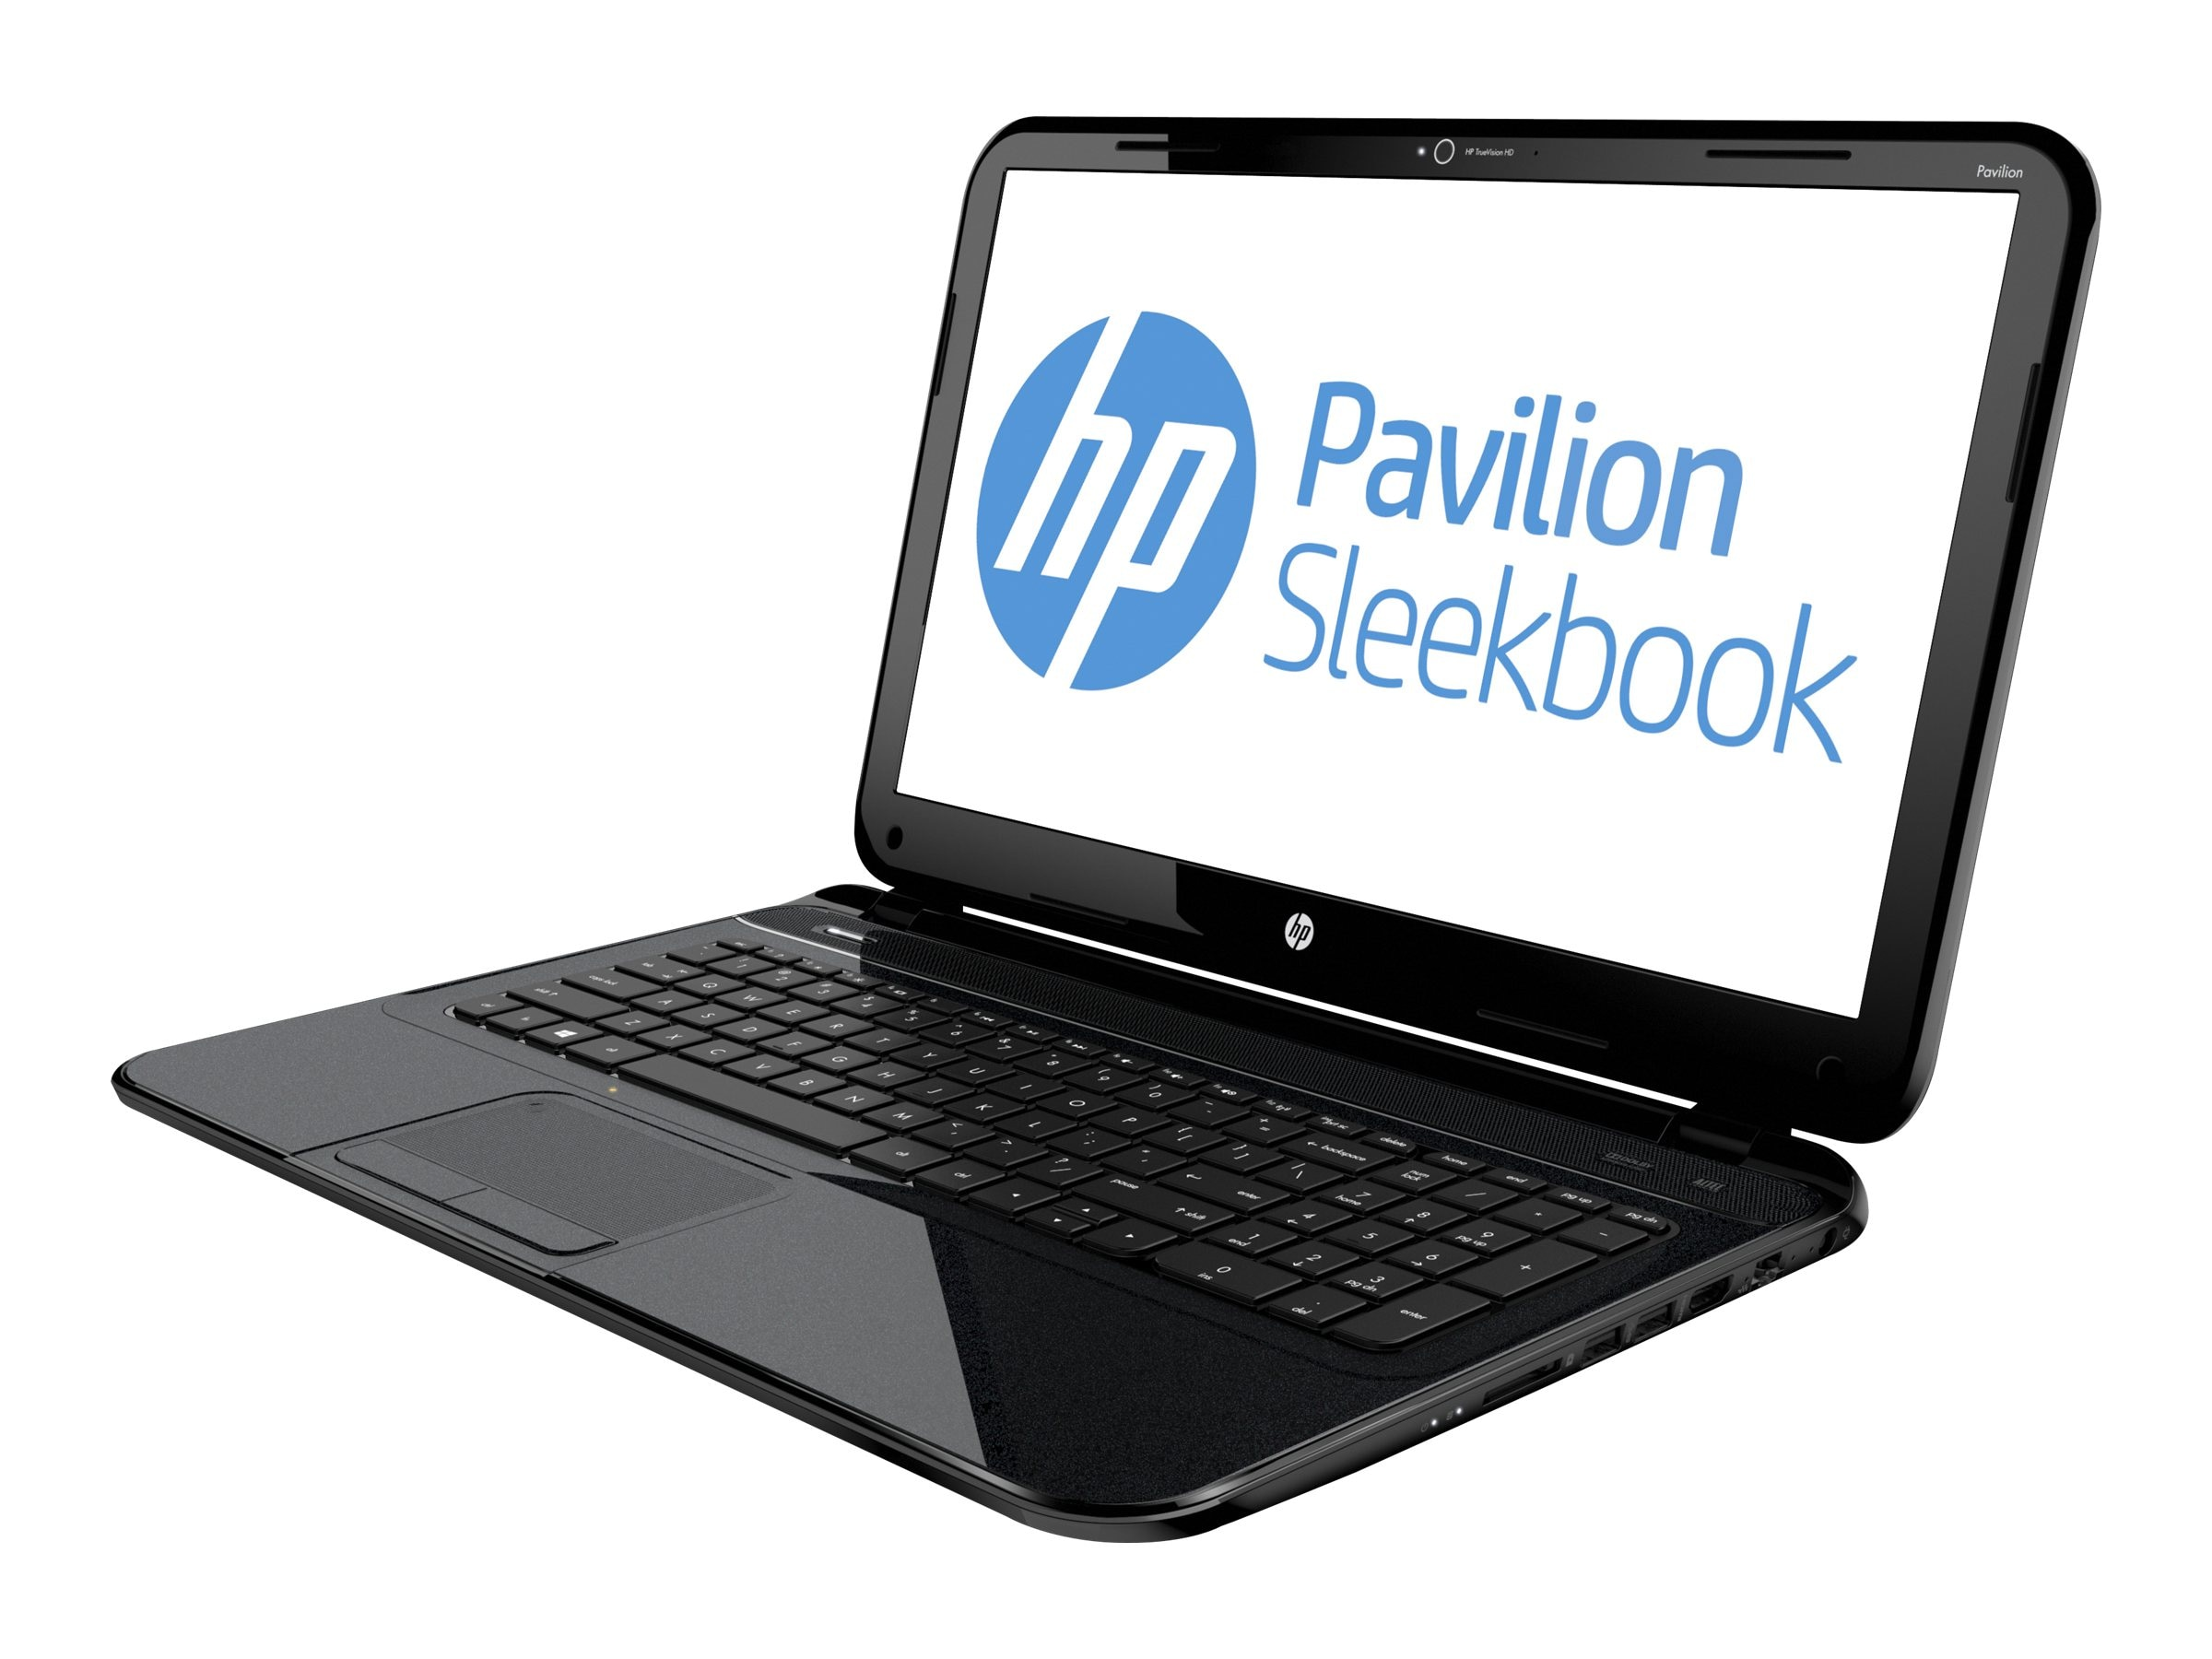 HP Pavilion Sleekbook 15-B120us : 2.1GHz A6 Series 15.6in display, D1E38UA#ABA, 15187816, Notebooks